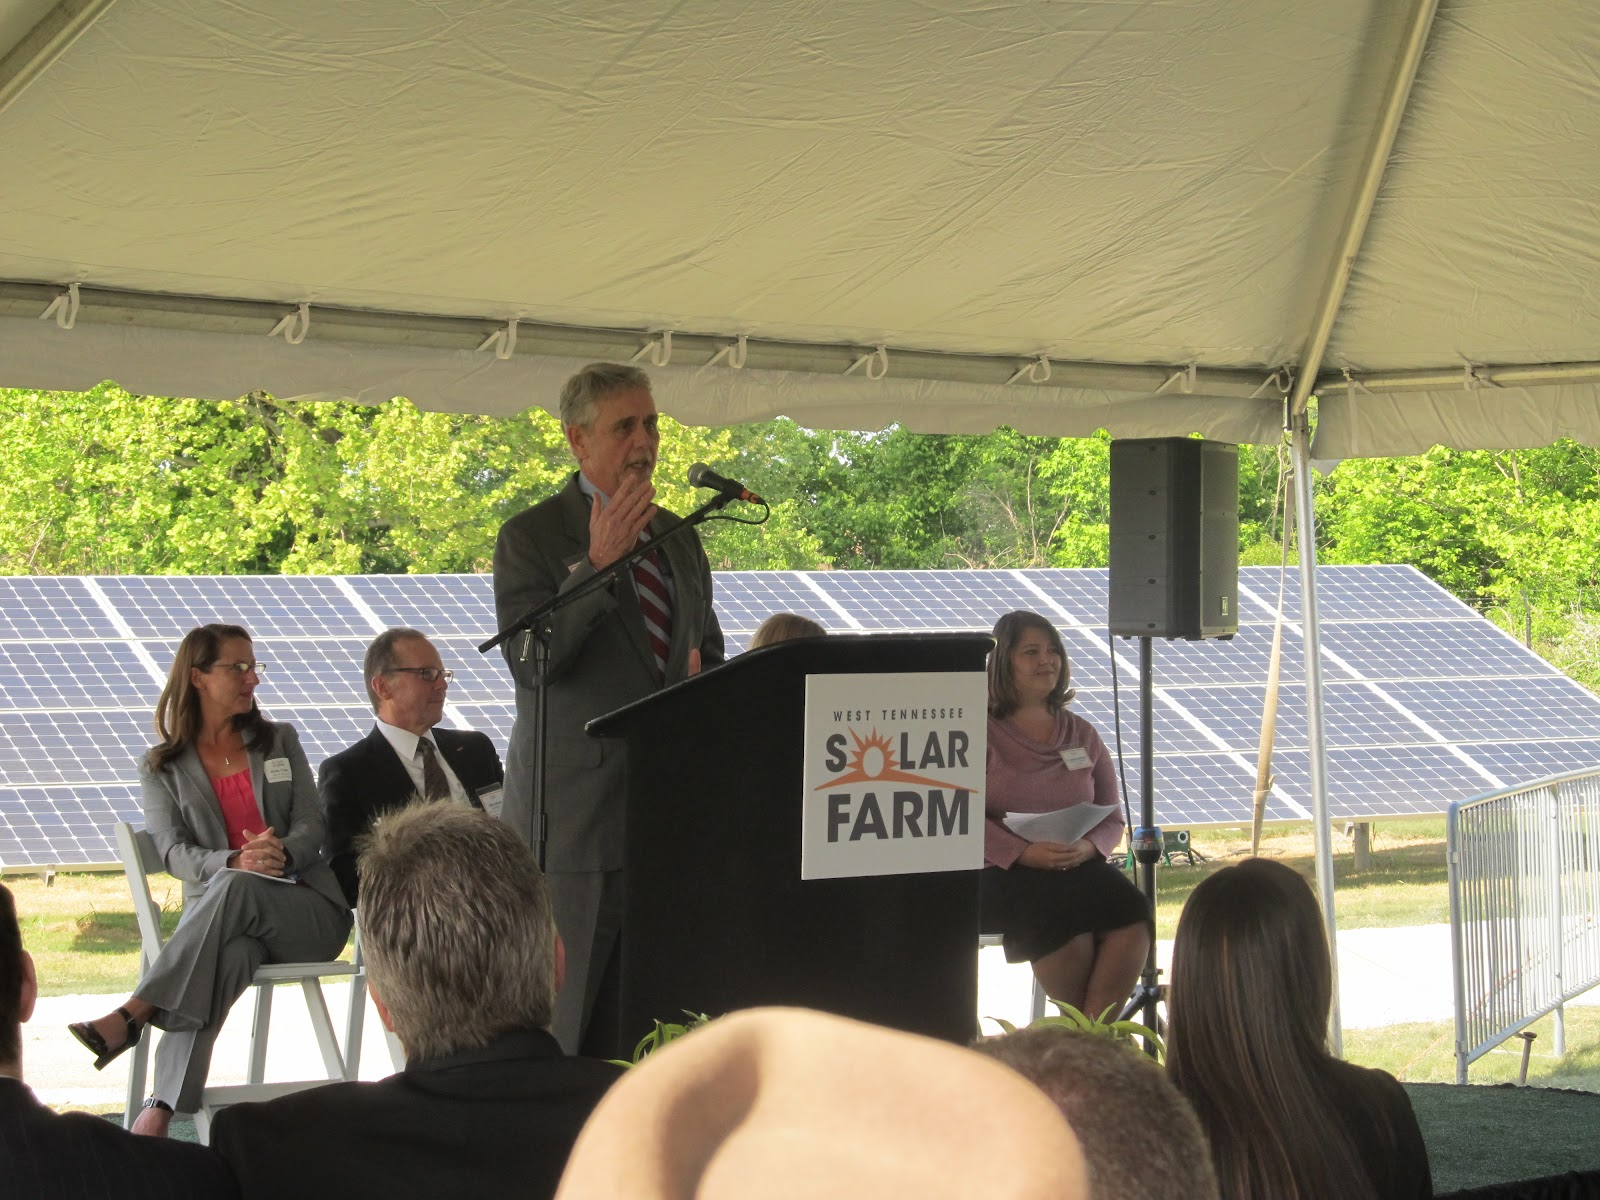 Tennessee haywood county stanton - Haywood County Mayor Franklin Smith Speaks At The Official Opening Of The West Tennessee Solar Farm Located In Stanton Tenn